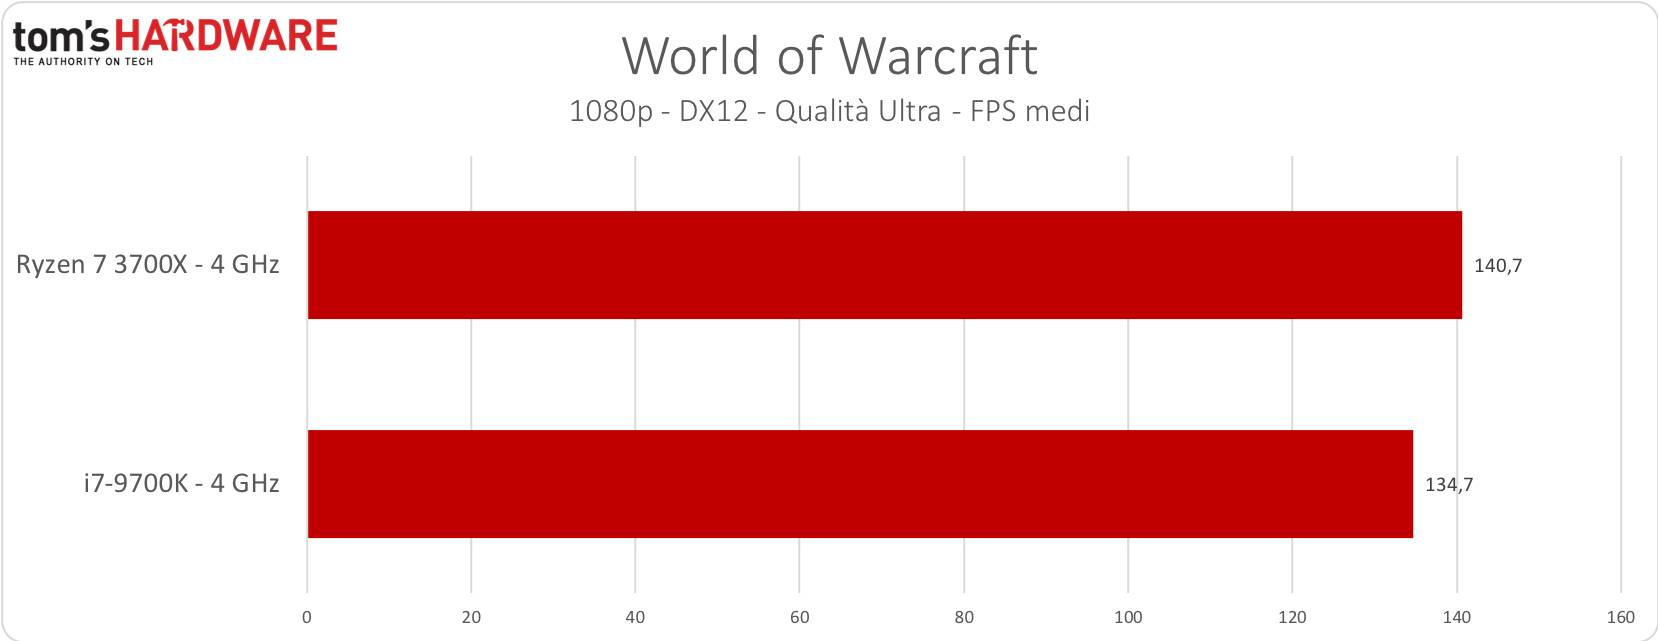 World of Warcraft - 4GHz